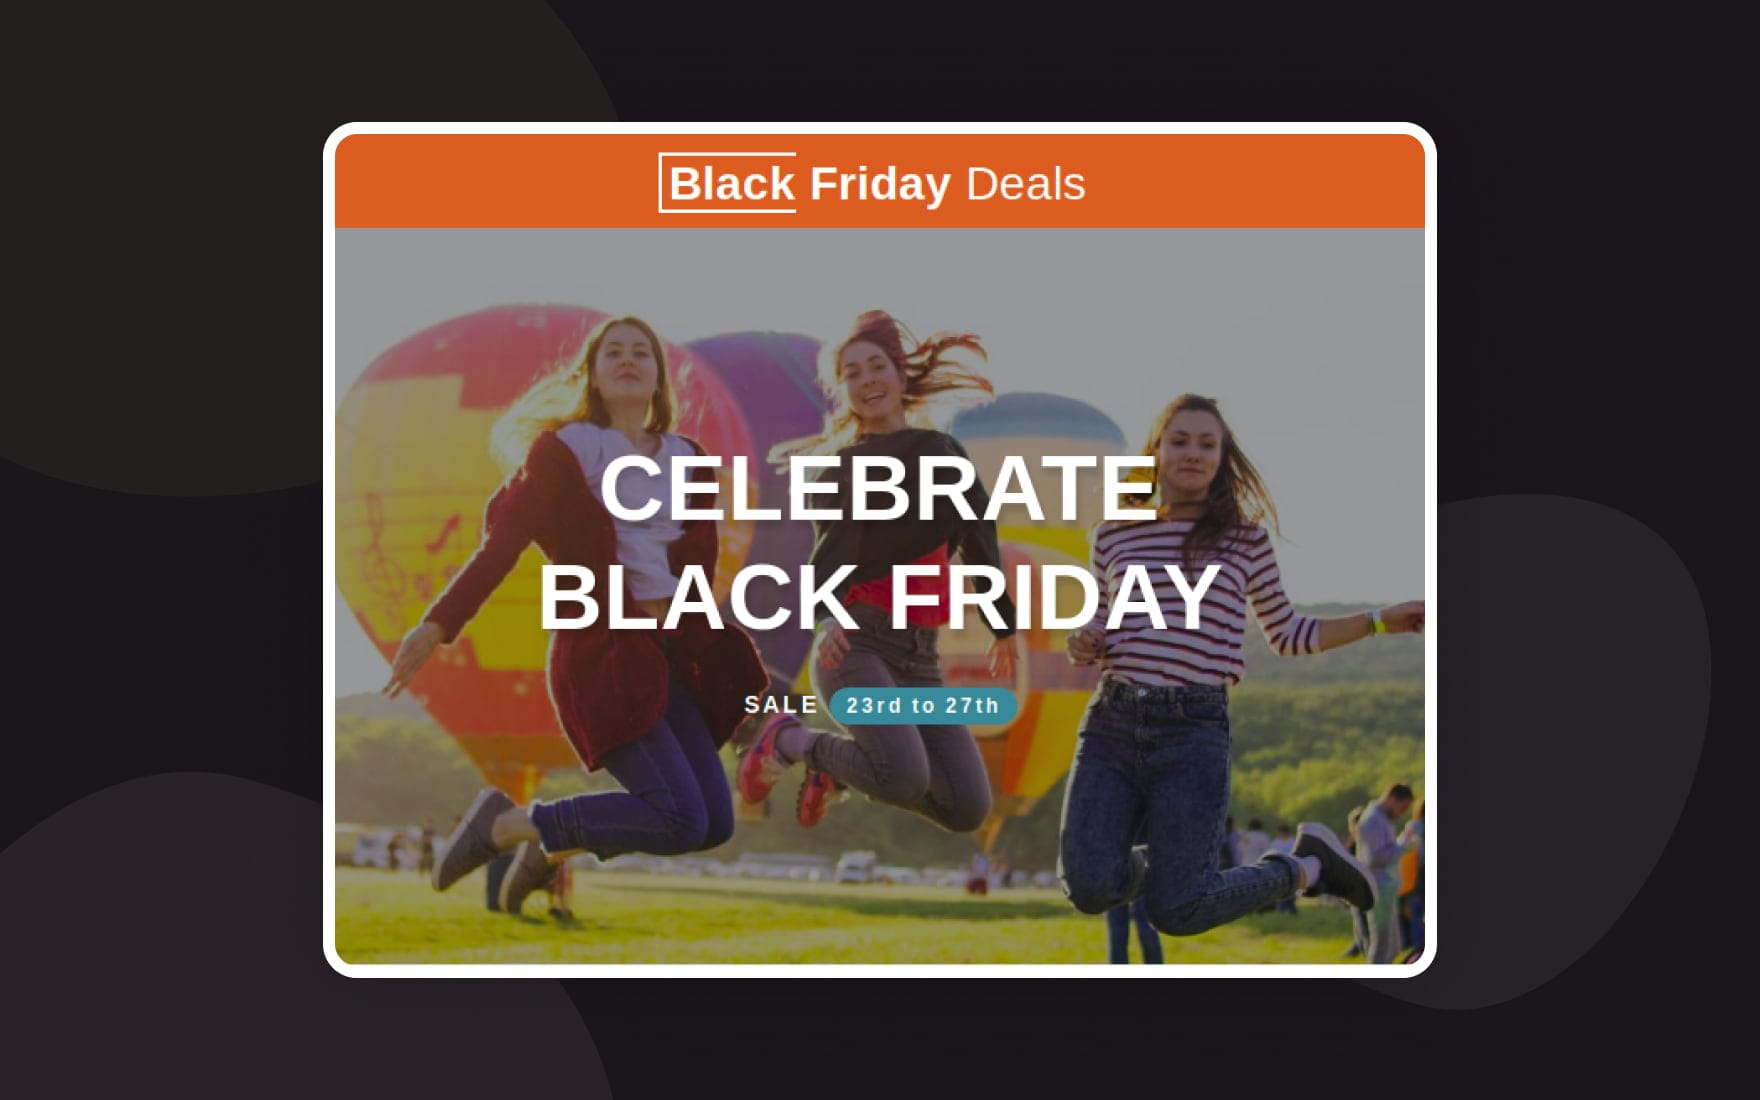 Black Friday 2019 Deals Responsive Email Template